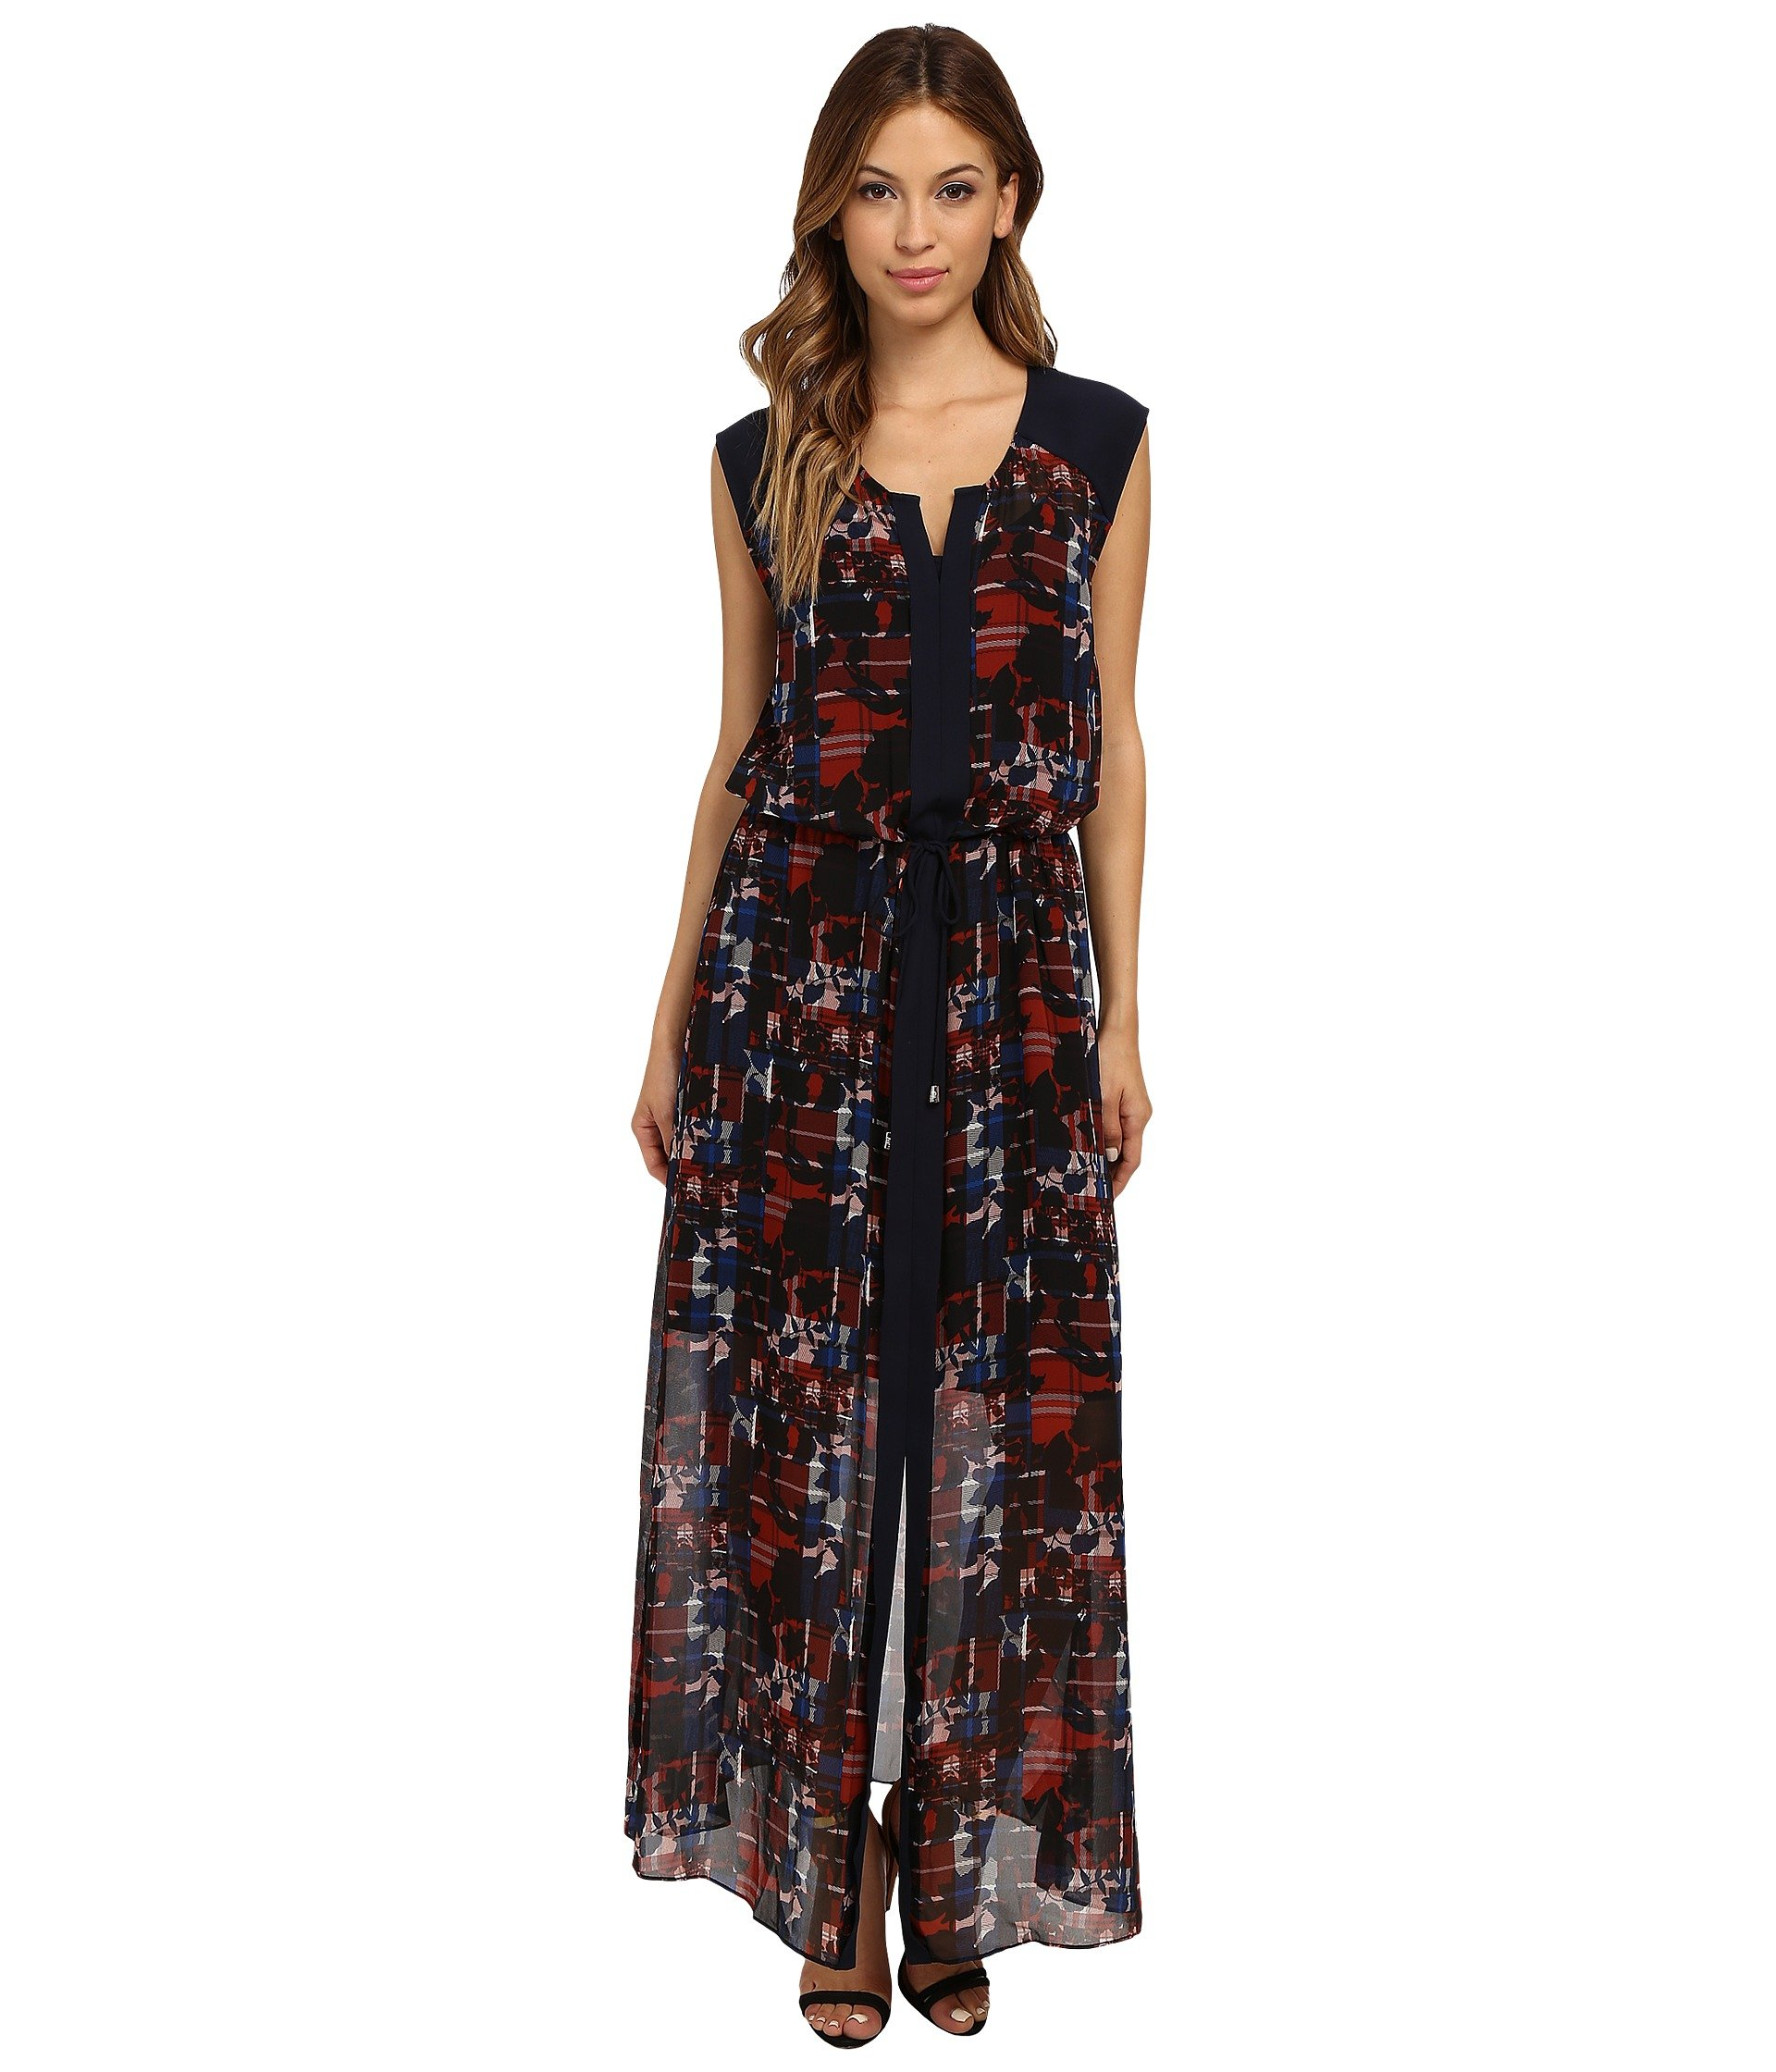 Lyst Vince Camuto Cap Sleeve Floral Plaid Tie Waist Maxi Dress